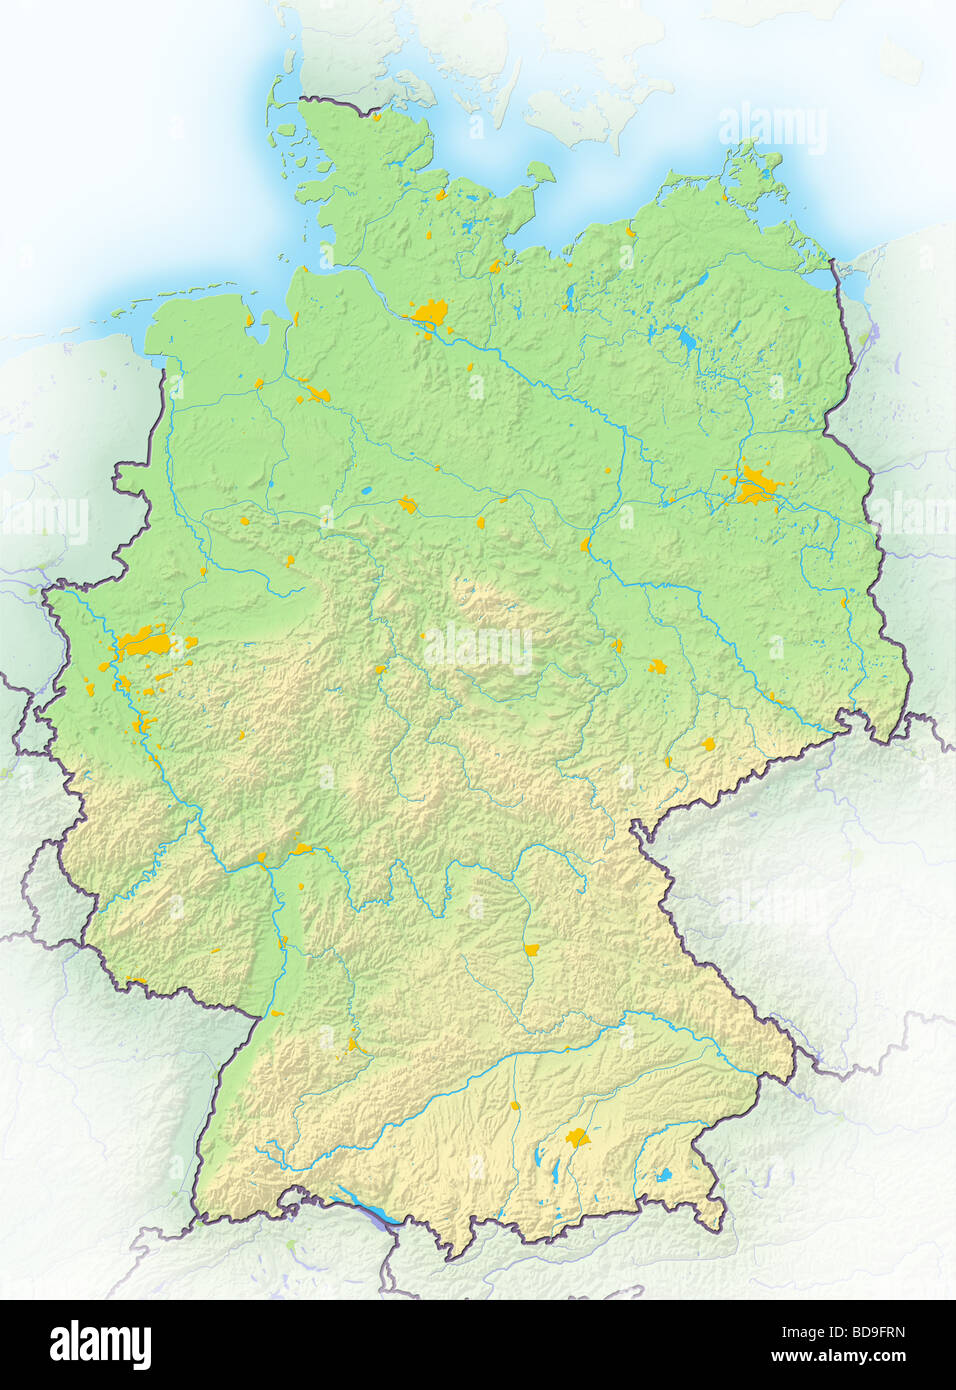 Karlsruhe Maps Germany Map Stock Photos Germany Map Stock Images Alamy